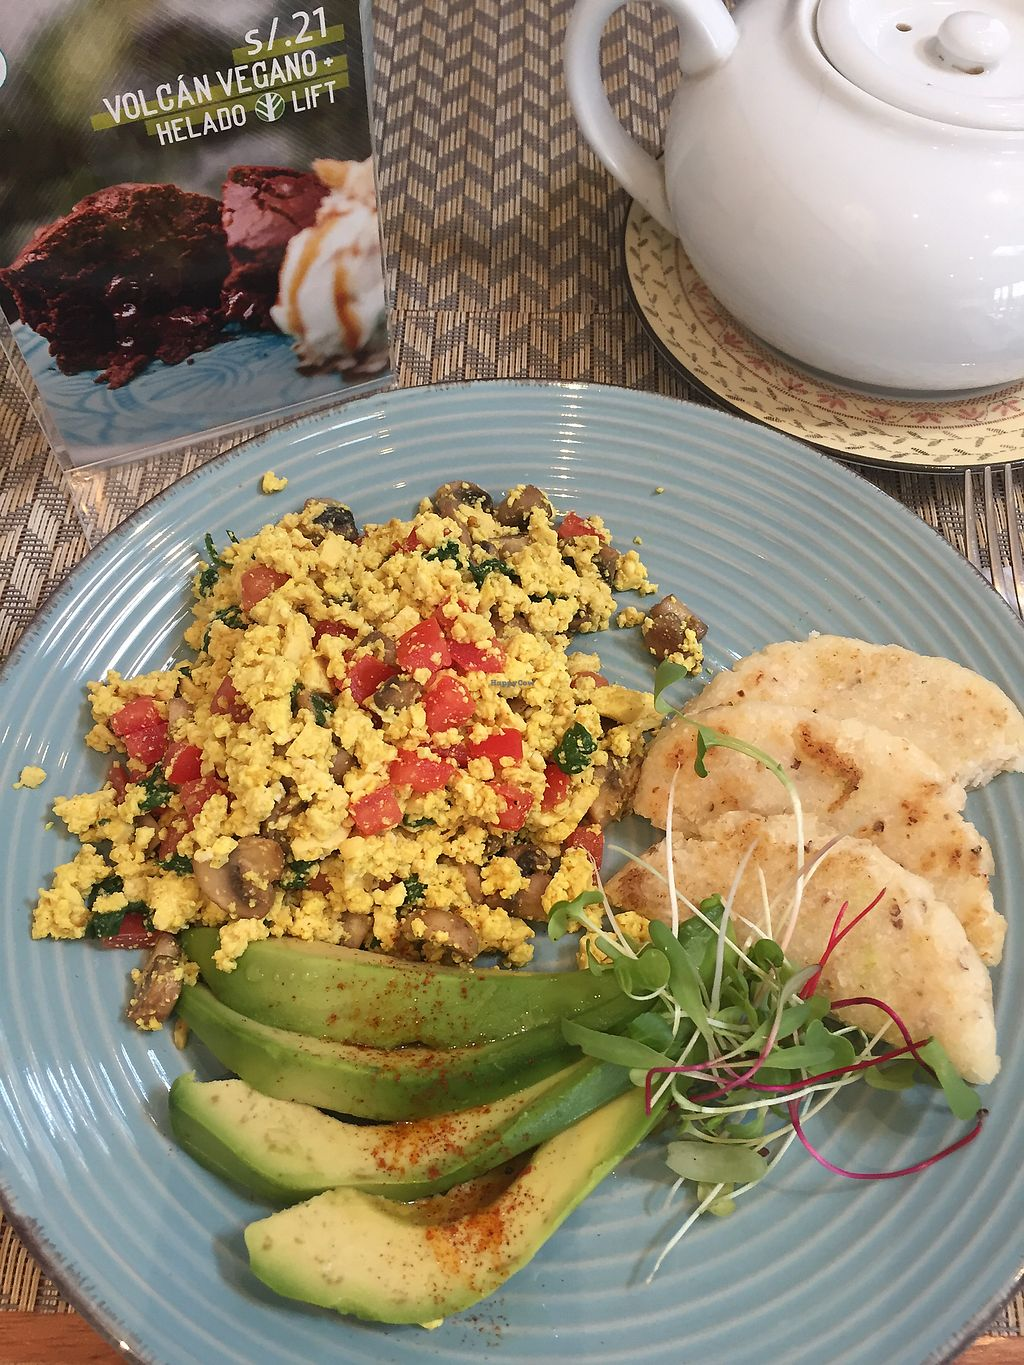 "Photo of Raw Cafe - Independencia  by <a href=""/members/profile/Dianebg"">Dianebg</a> <br/>Scrambled tofu, avocado and corn bread  <br/> November 10, 2017  - <a href='/contact/abuse/image/41640/324024'>Report</a>"